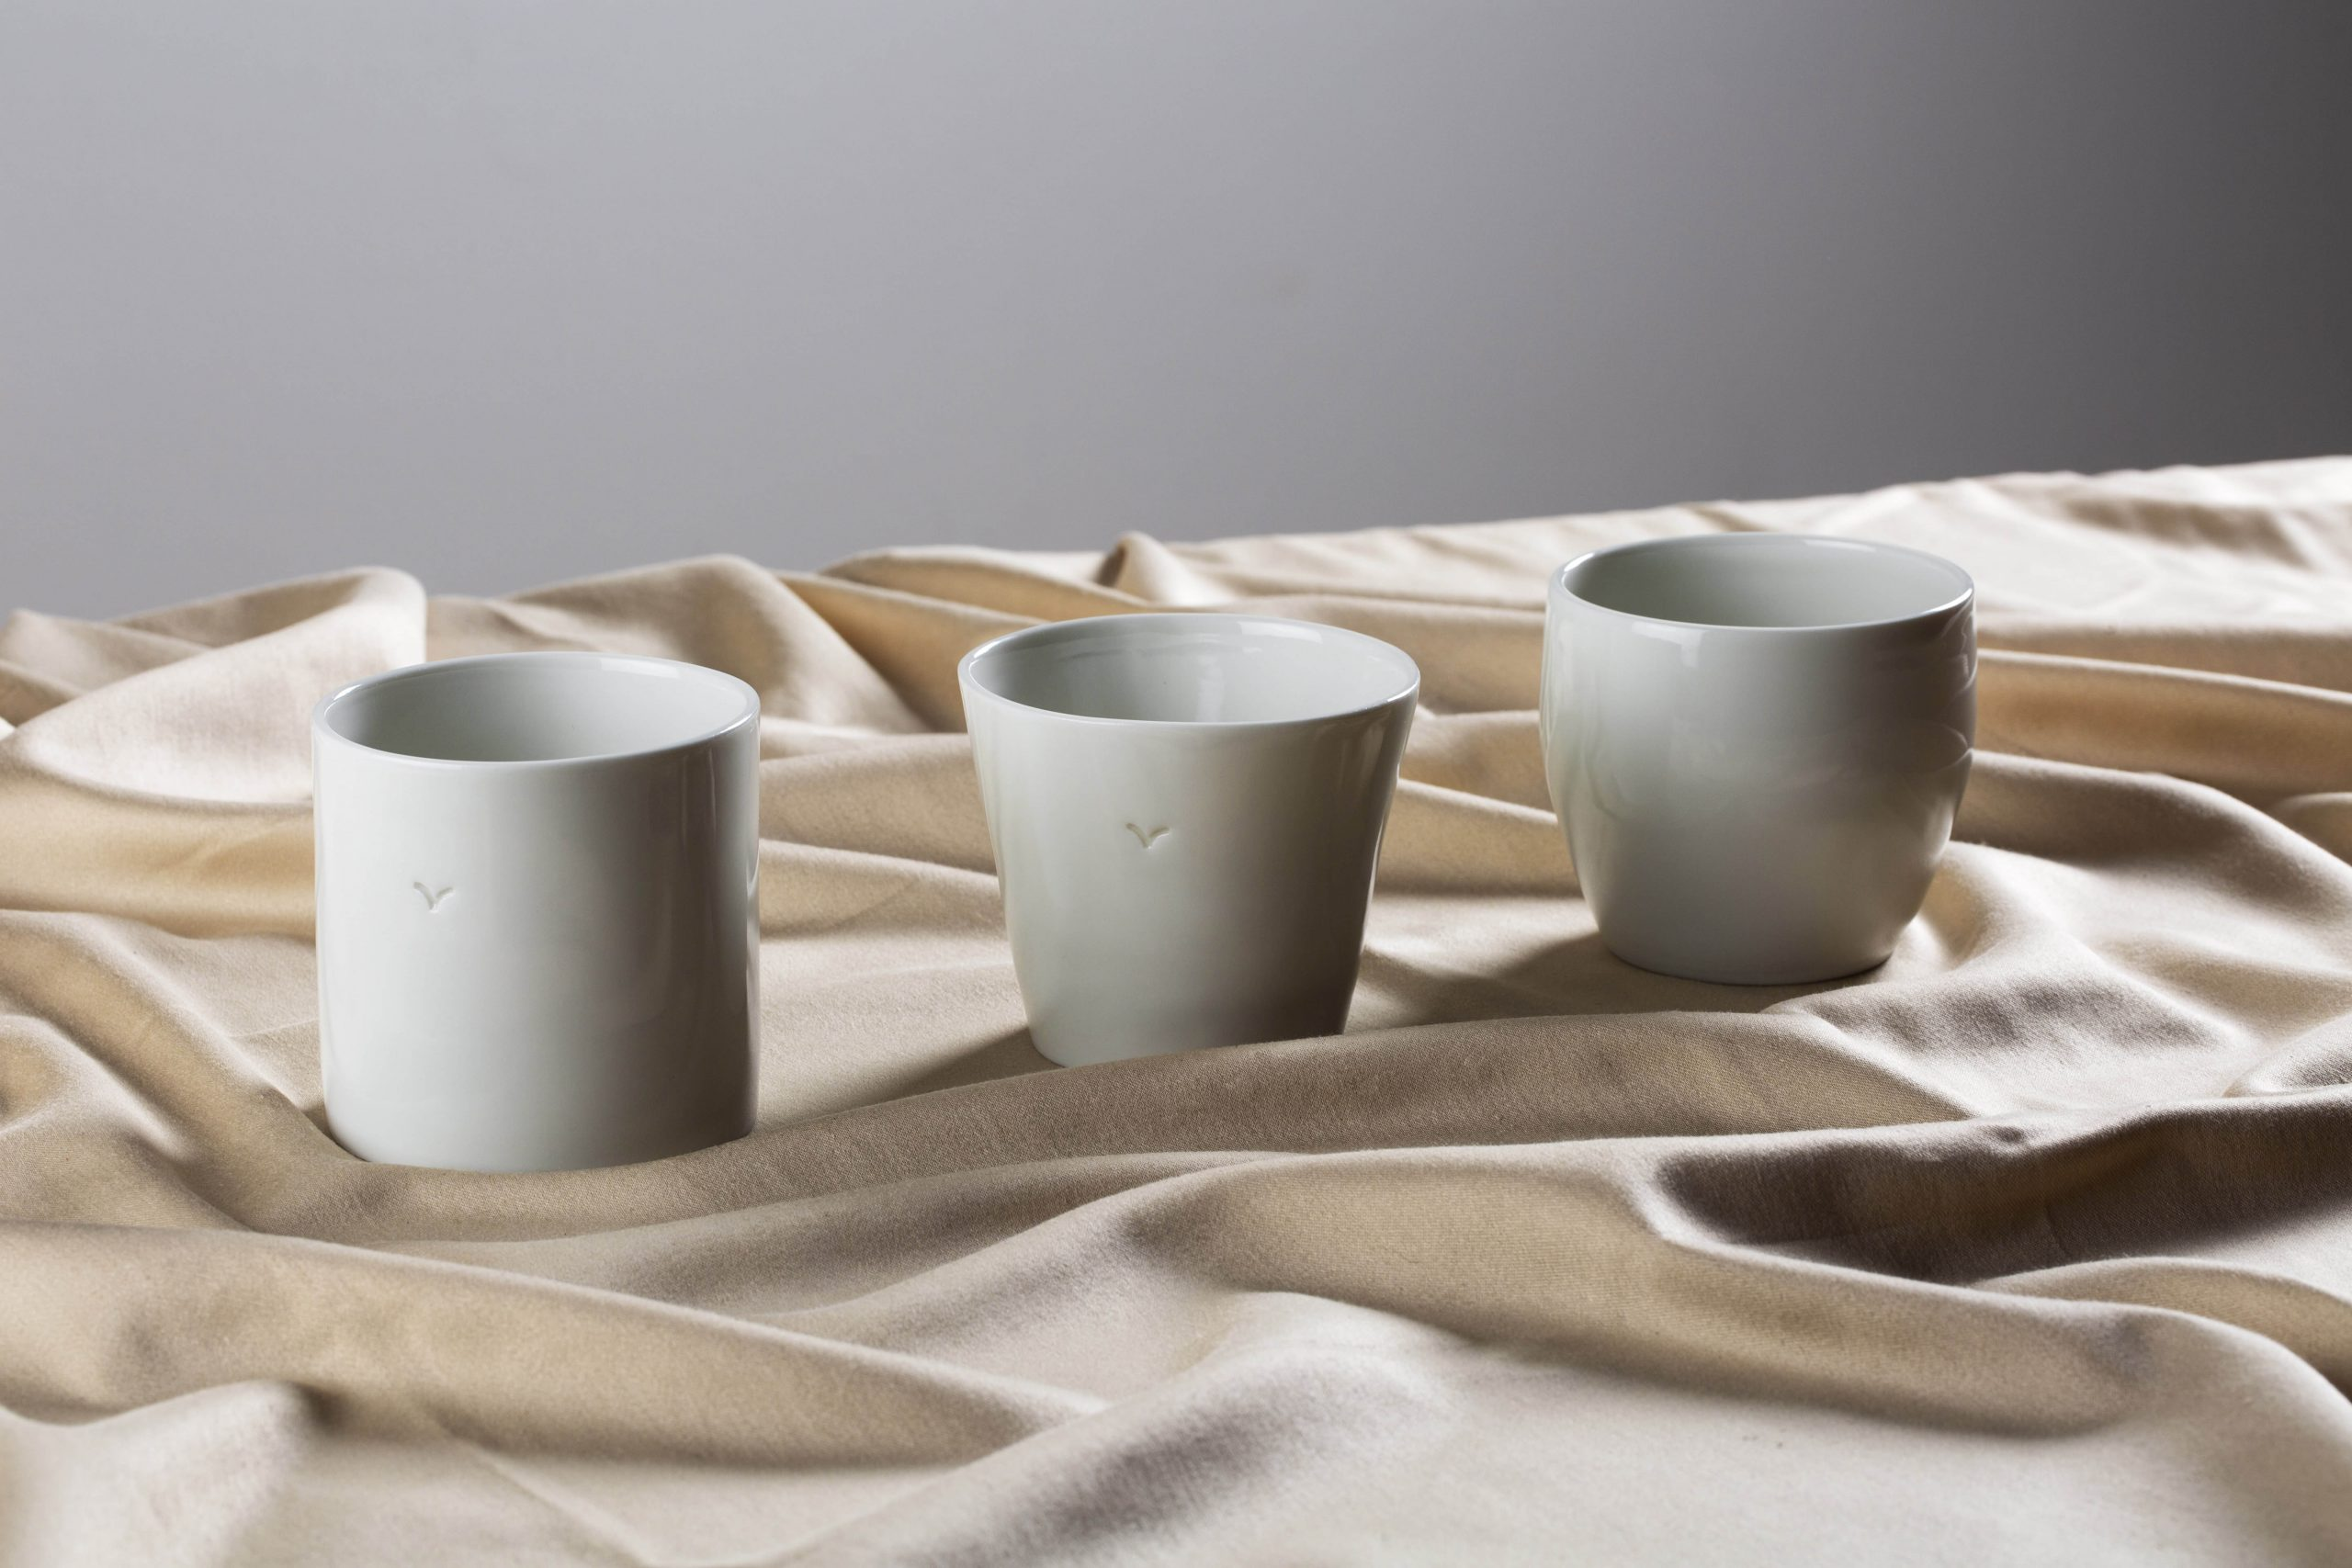 three handmande white porcelain cups in a row on a fabric - Federica Ramacciotti